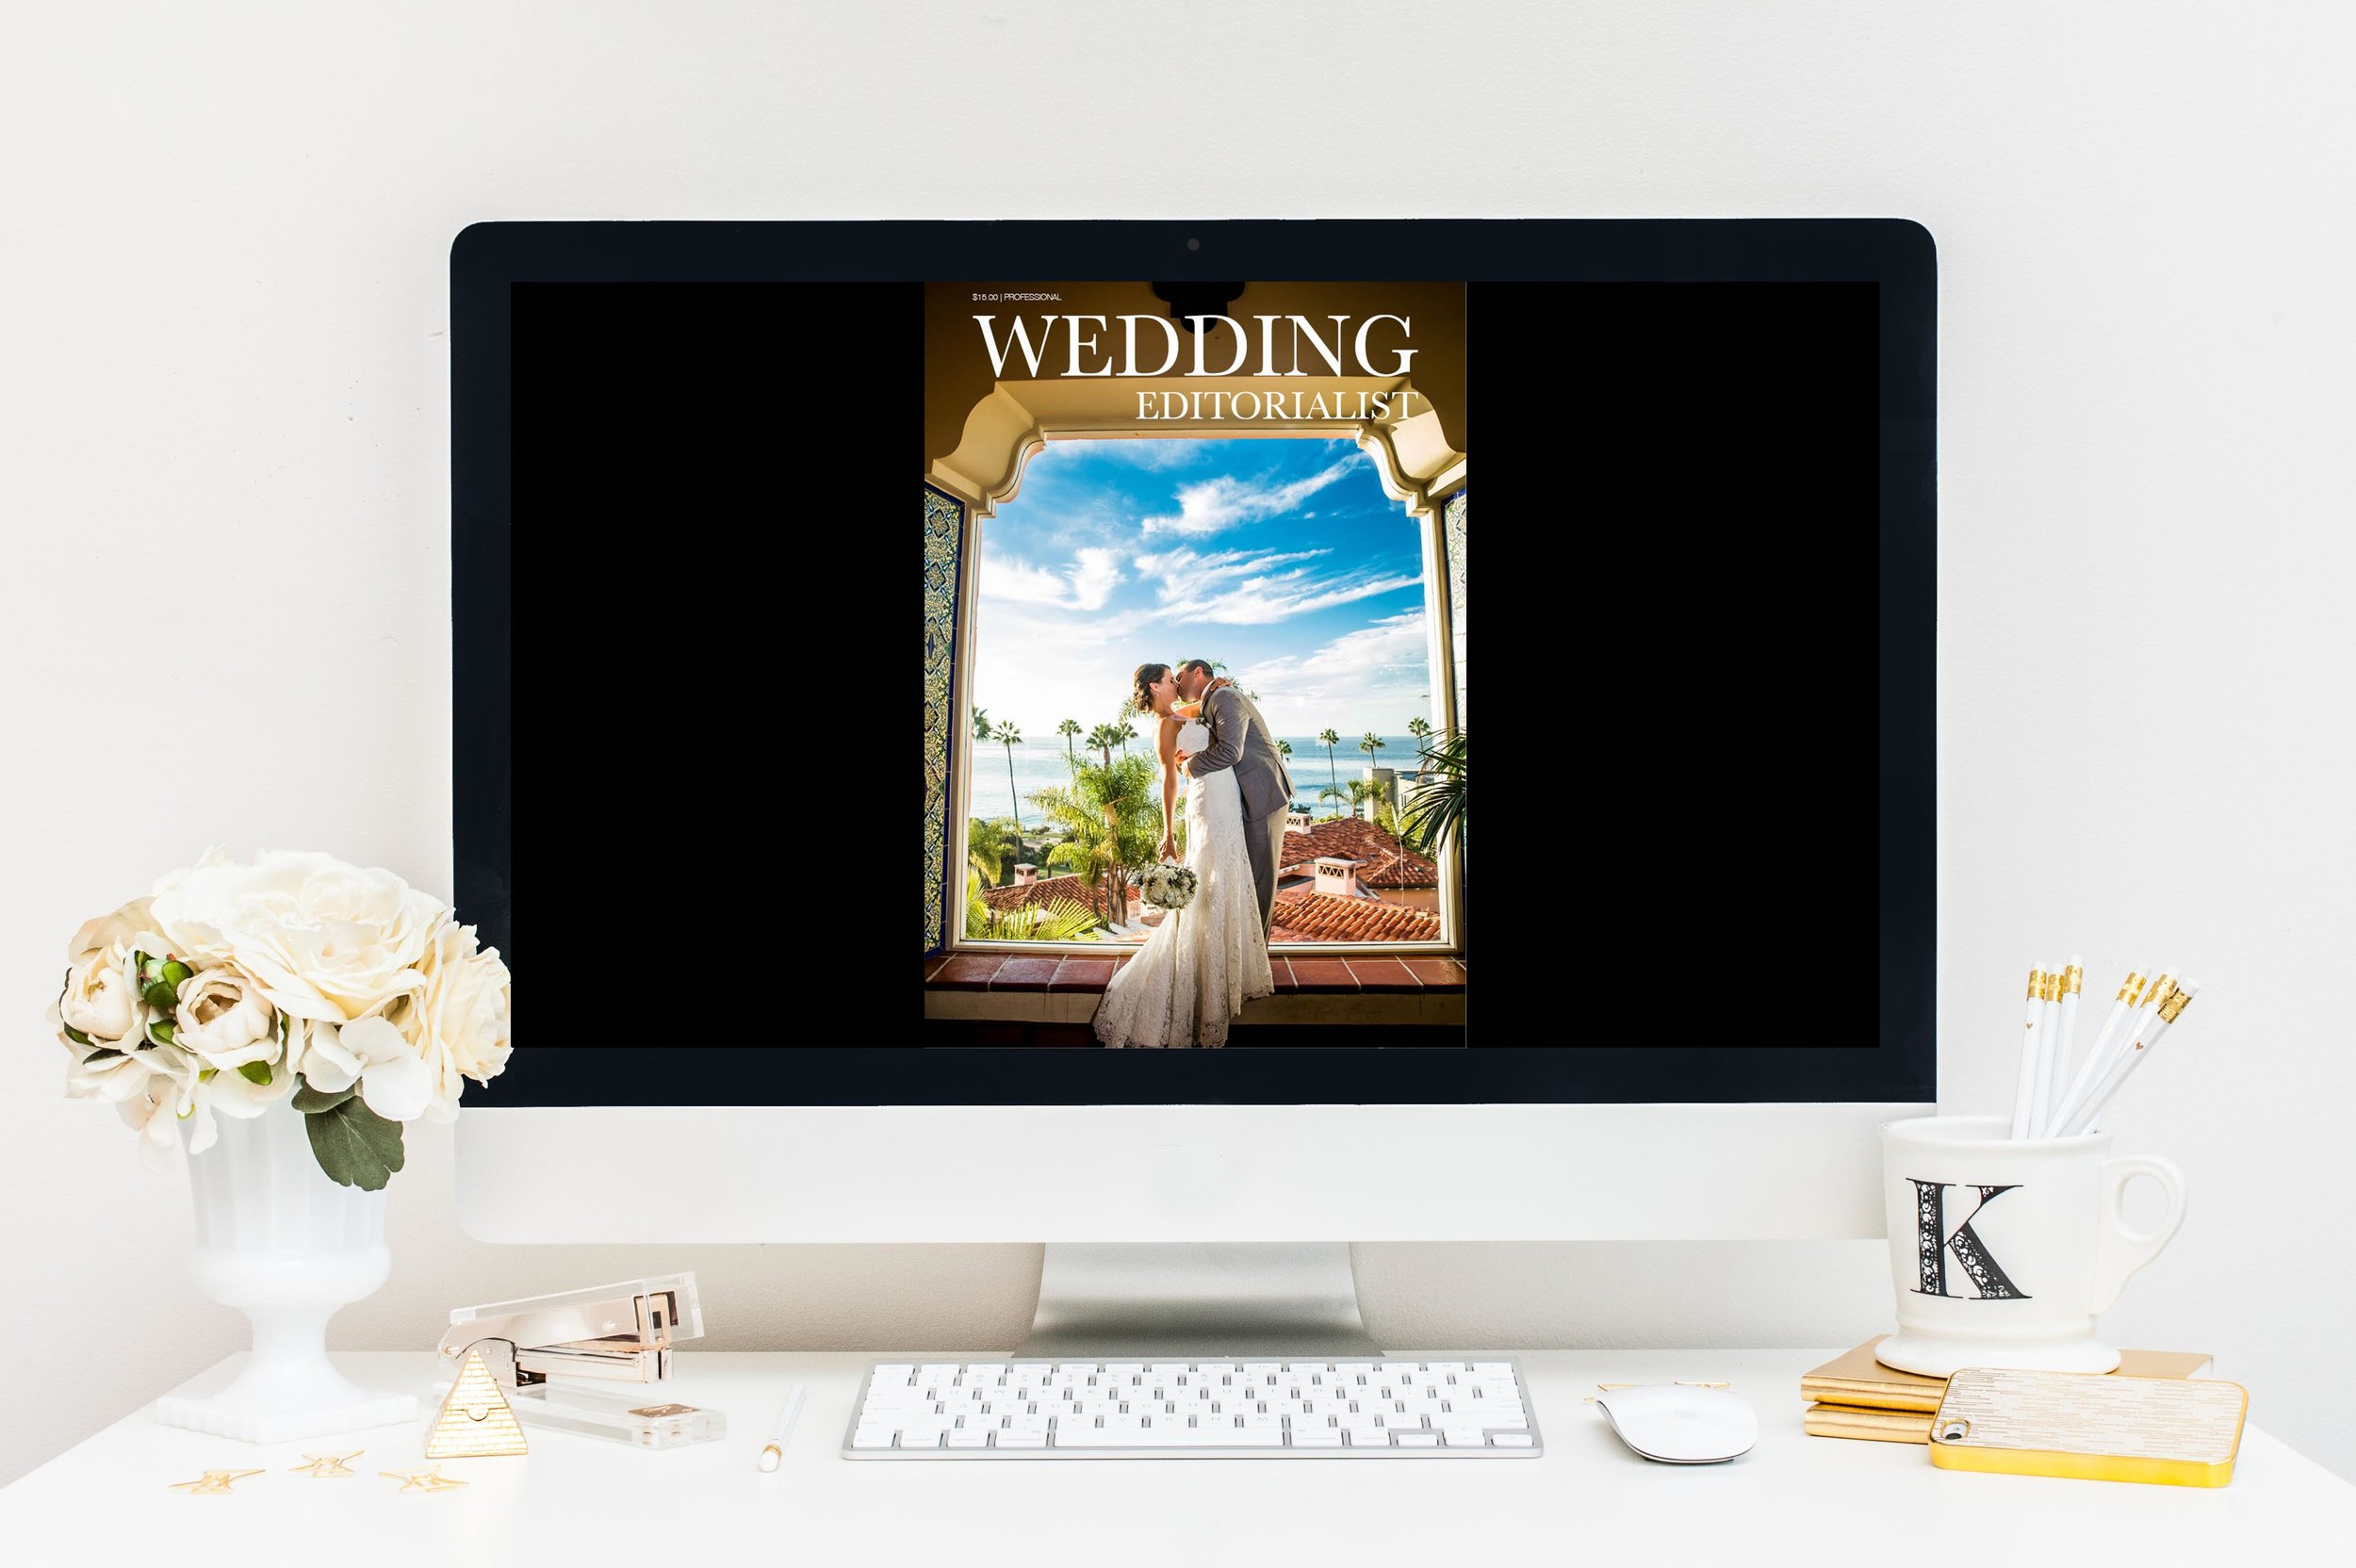 """PROFESSIONAL PIECE:  The Wedding Editorialist is proud to present you with this very special issue dedicated to the La Valencia Hotel. Known as """"the Pink Jewel"""" of La Jolla, California this historic venue is an ideal location for your wedding. With stunning beachfront property, a collection of beautifully re-designed hotel rooms and suites, and with beautiful villas, the La Valencia Hotel offers culinary delights and first class service. To learn more about The La Valencia,  CLICK HERE ."""